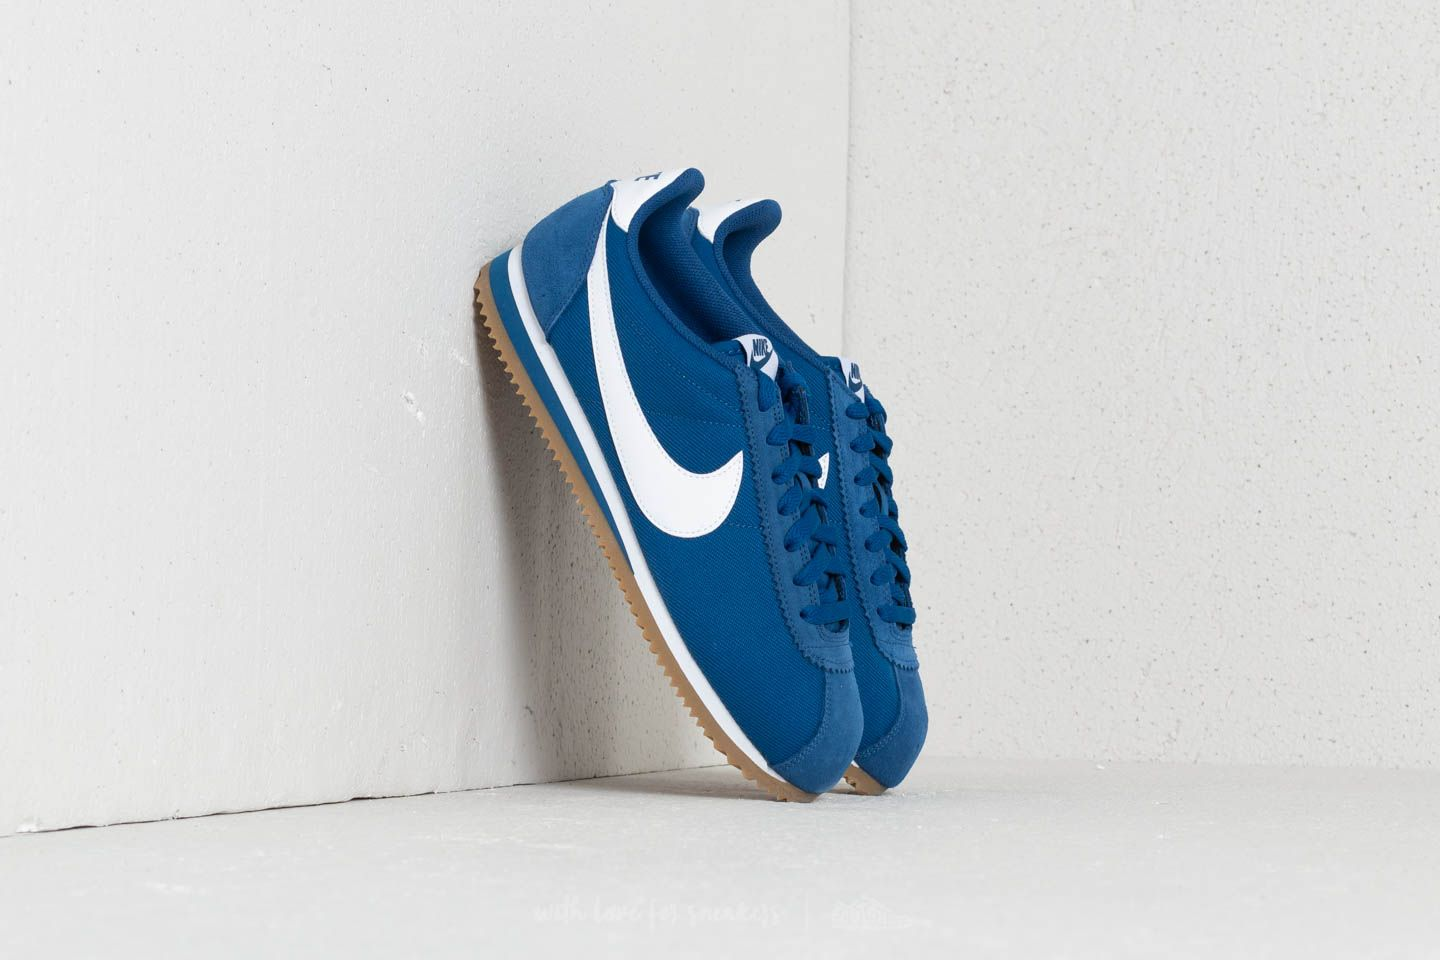 lowest price d6bd0 5b0cc ... coupon code for nike classic cortez nylon 0c92a 64f41